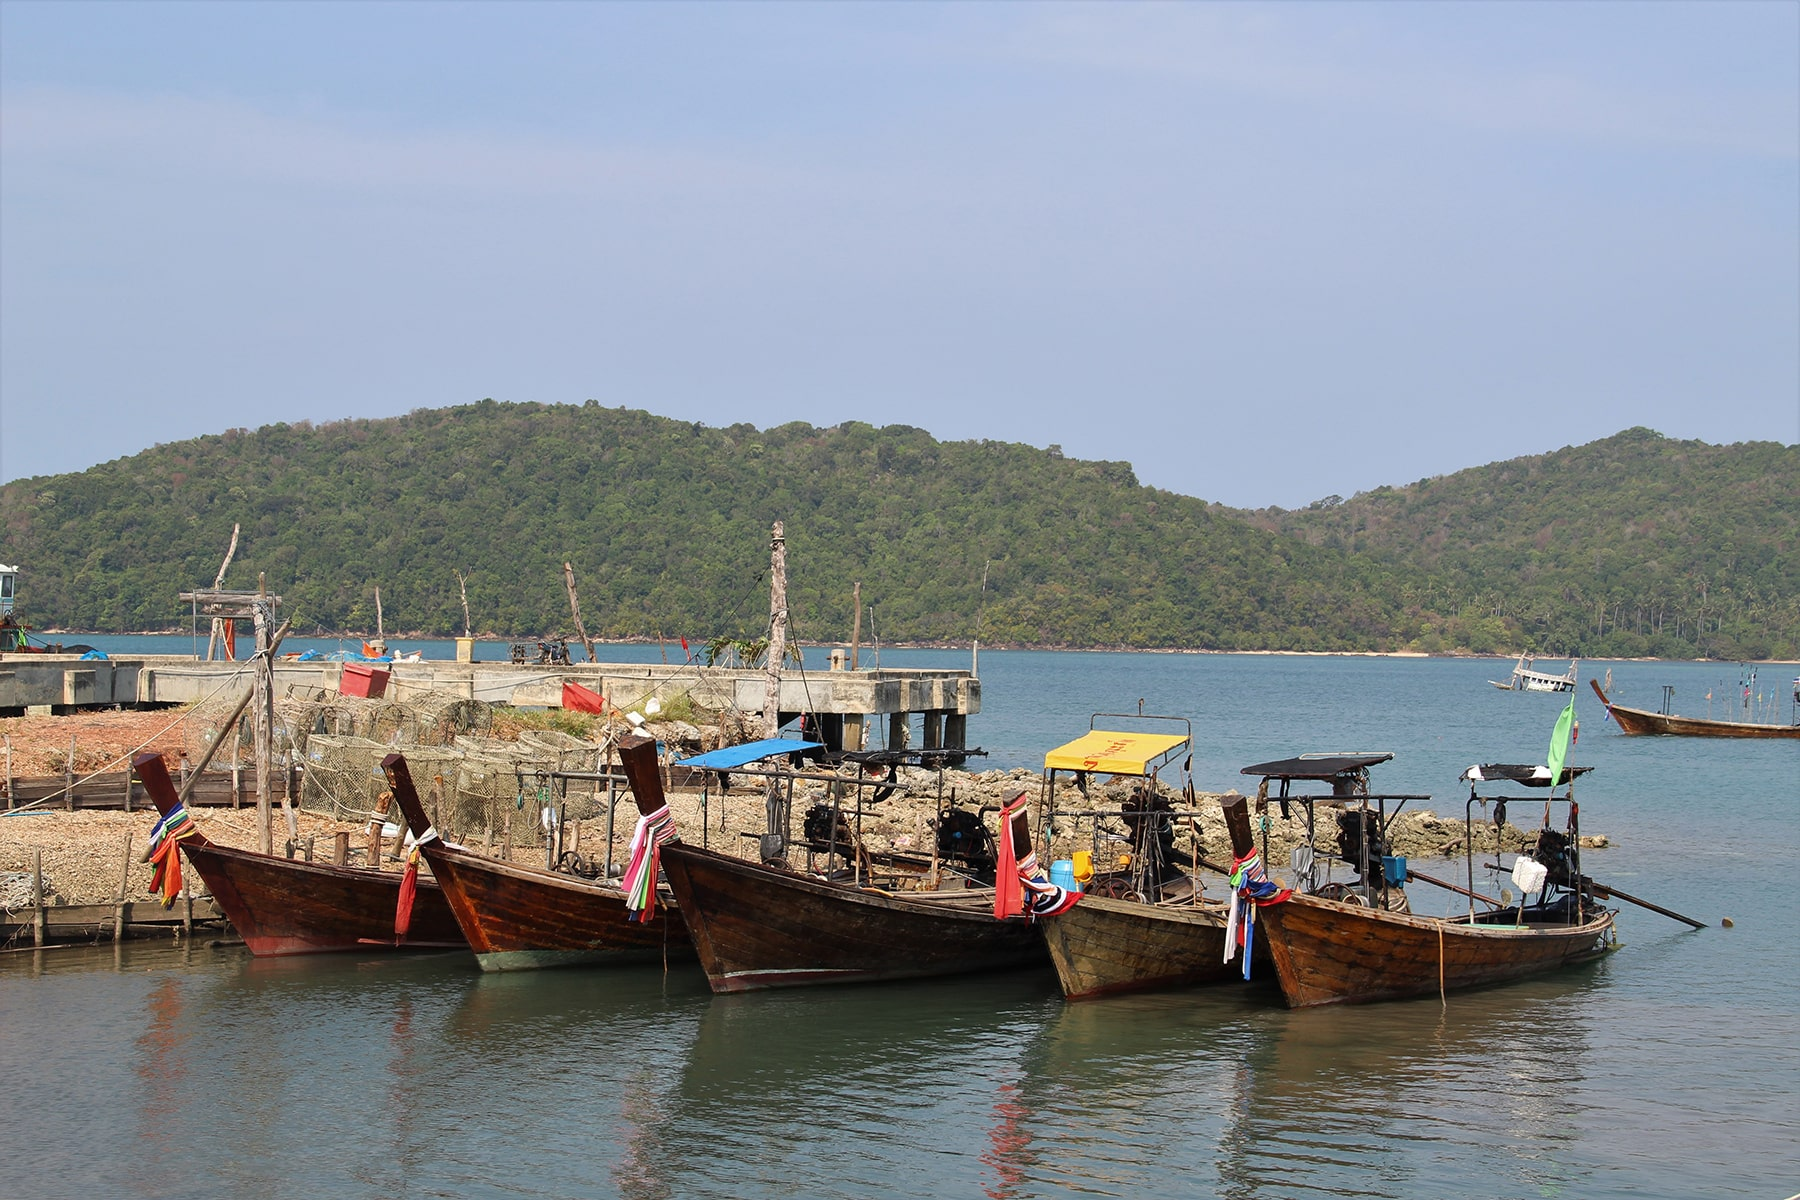 Boats in Koh Yao Yai fishermen's village